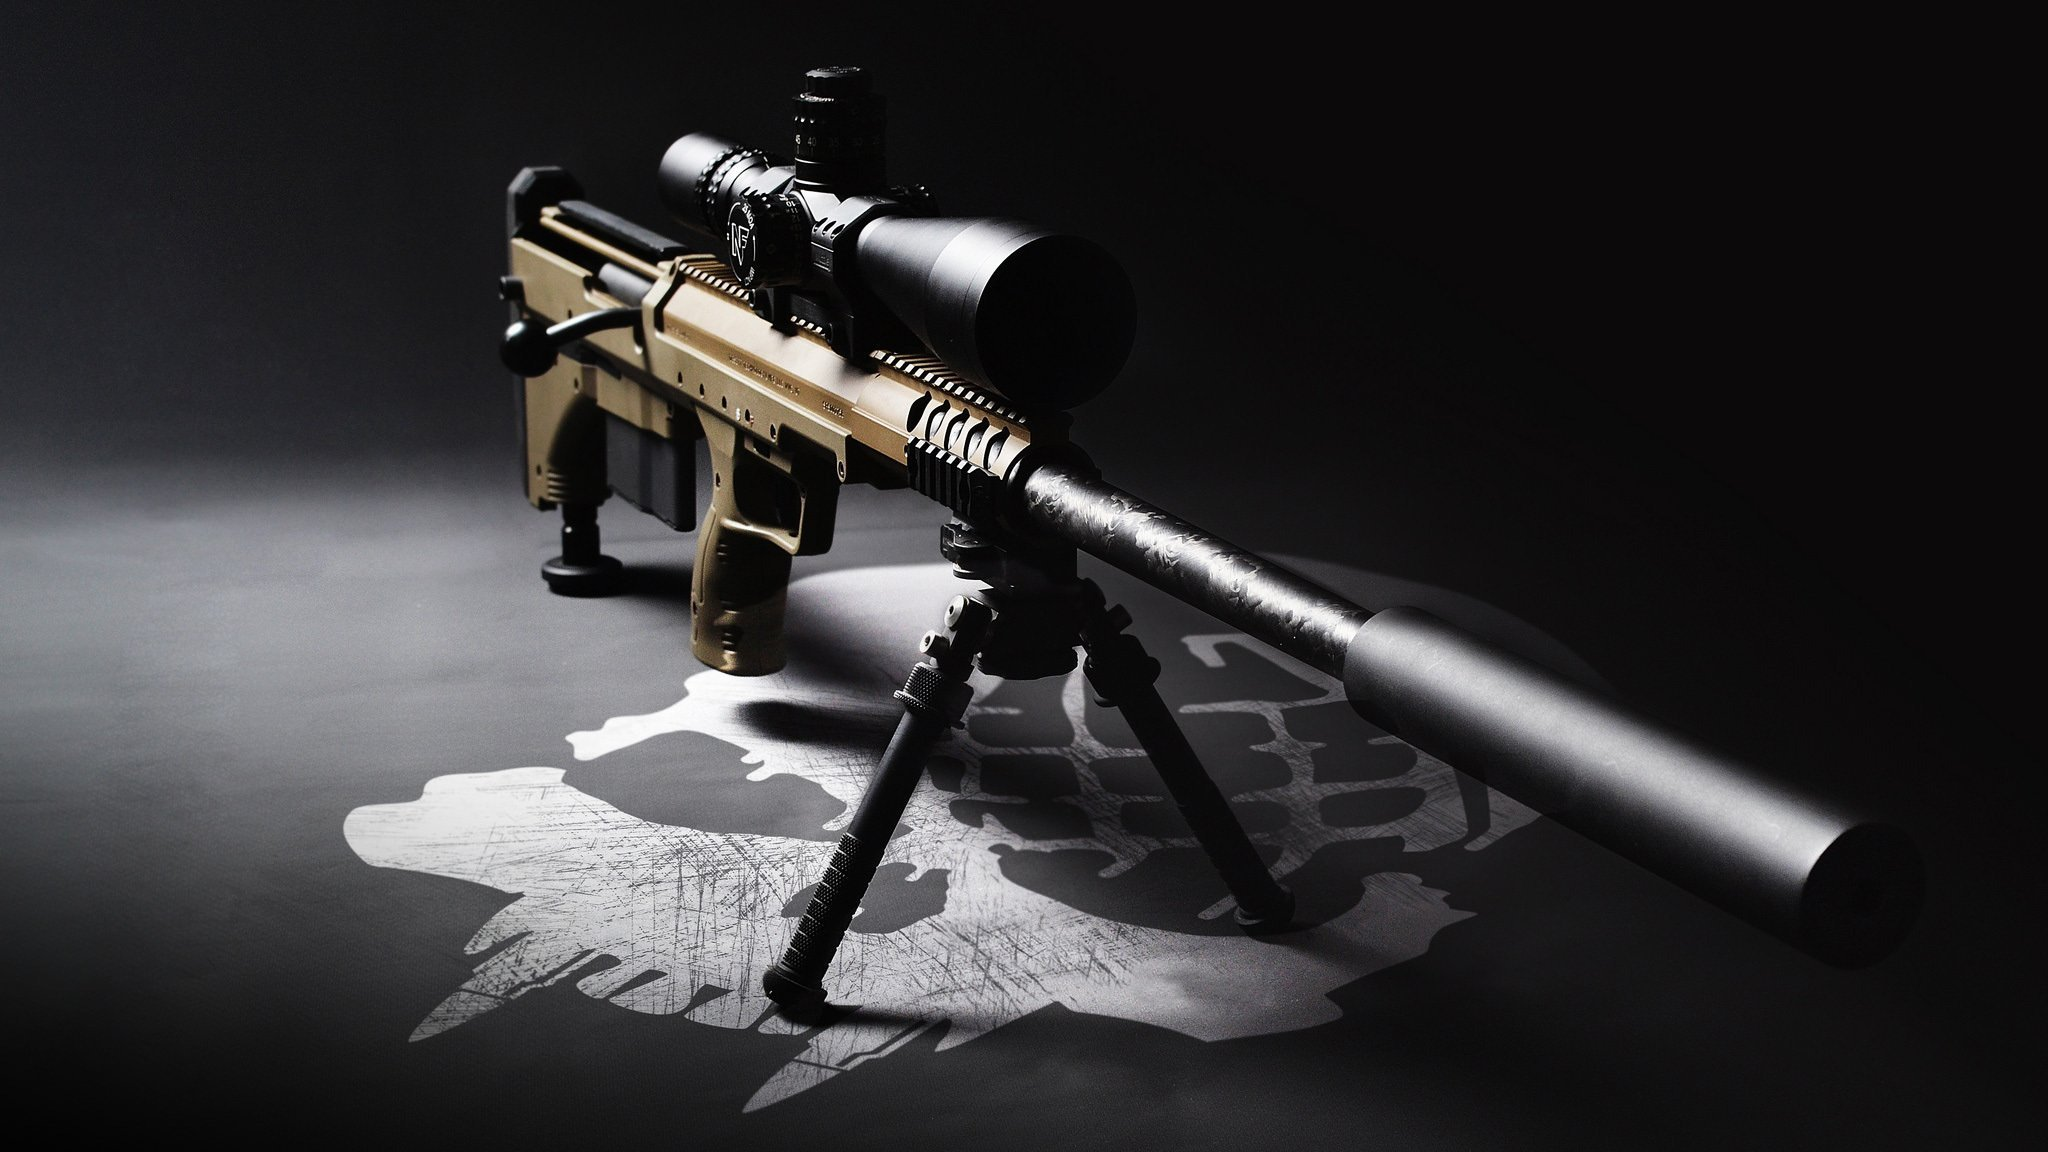 Gallery For gt Sniper Rifle With Silencer Wallpaper 2048x1152